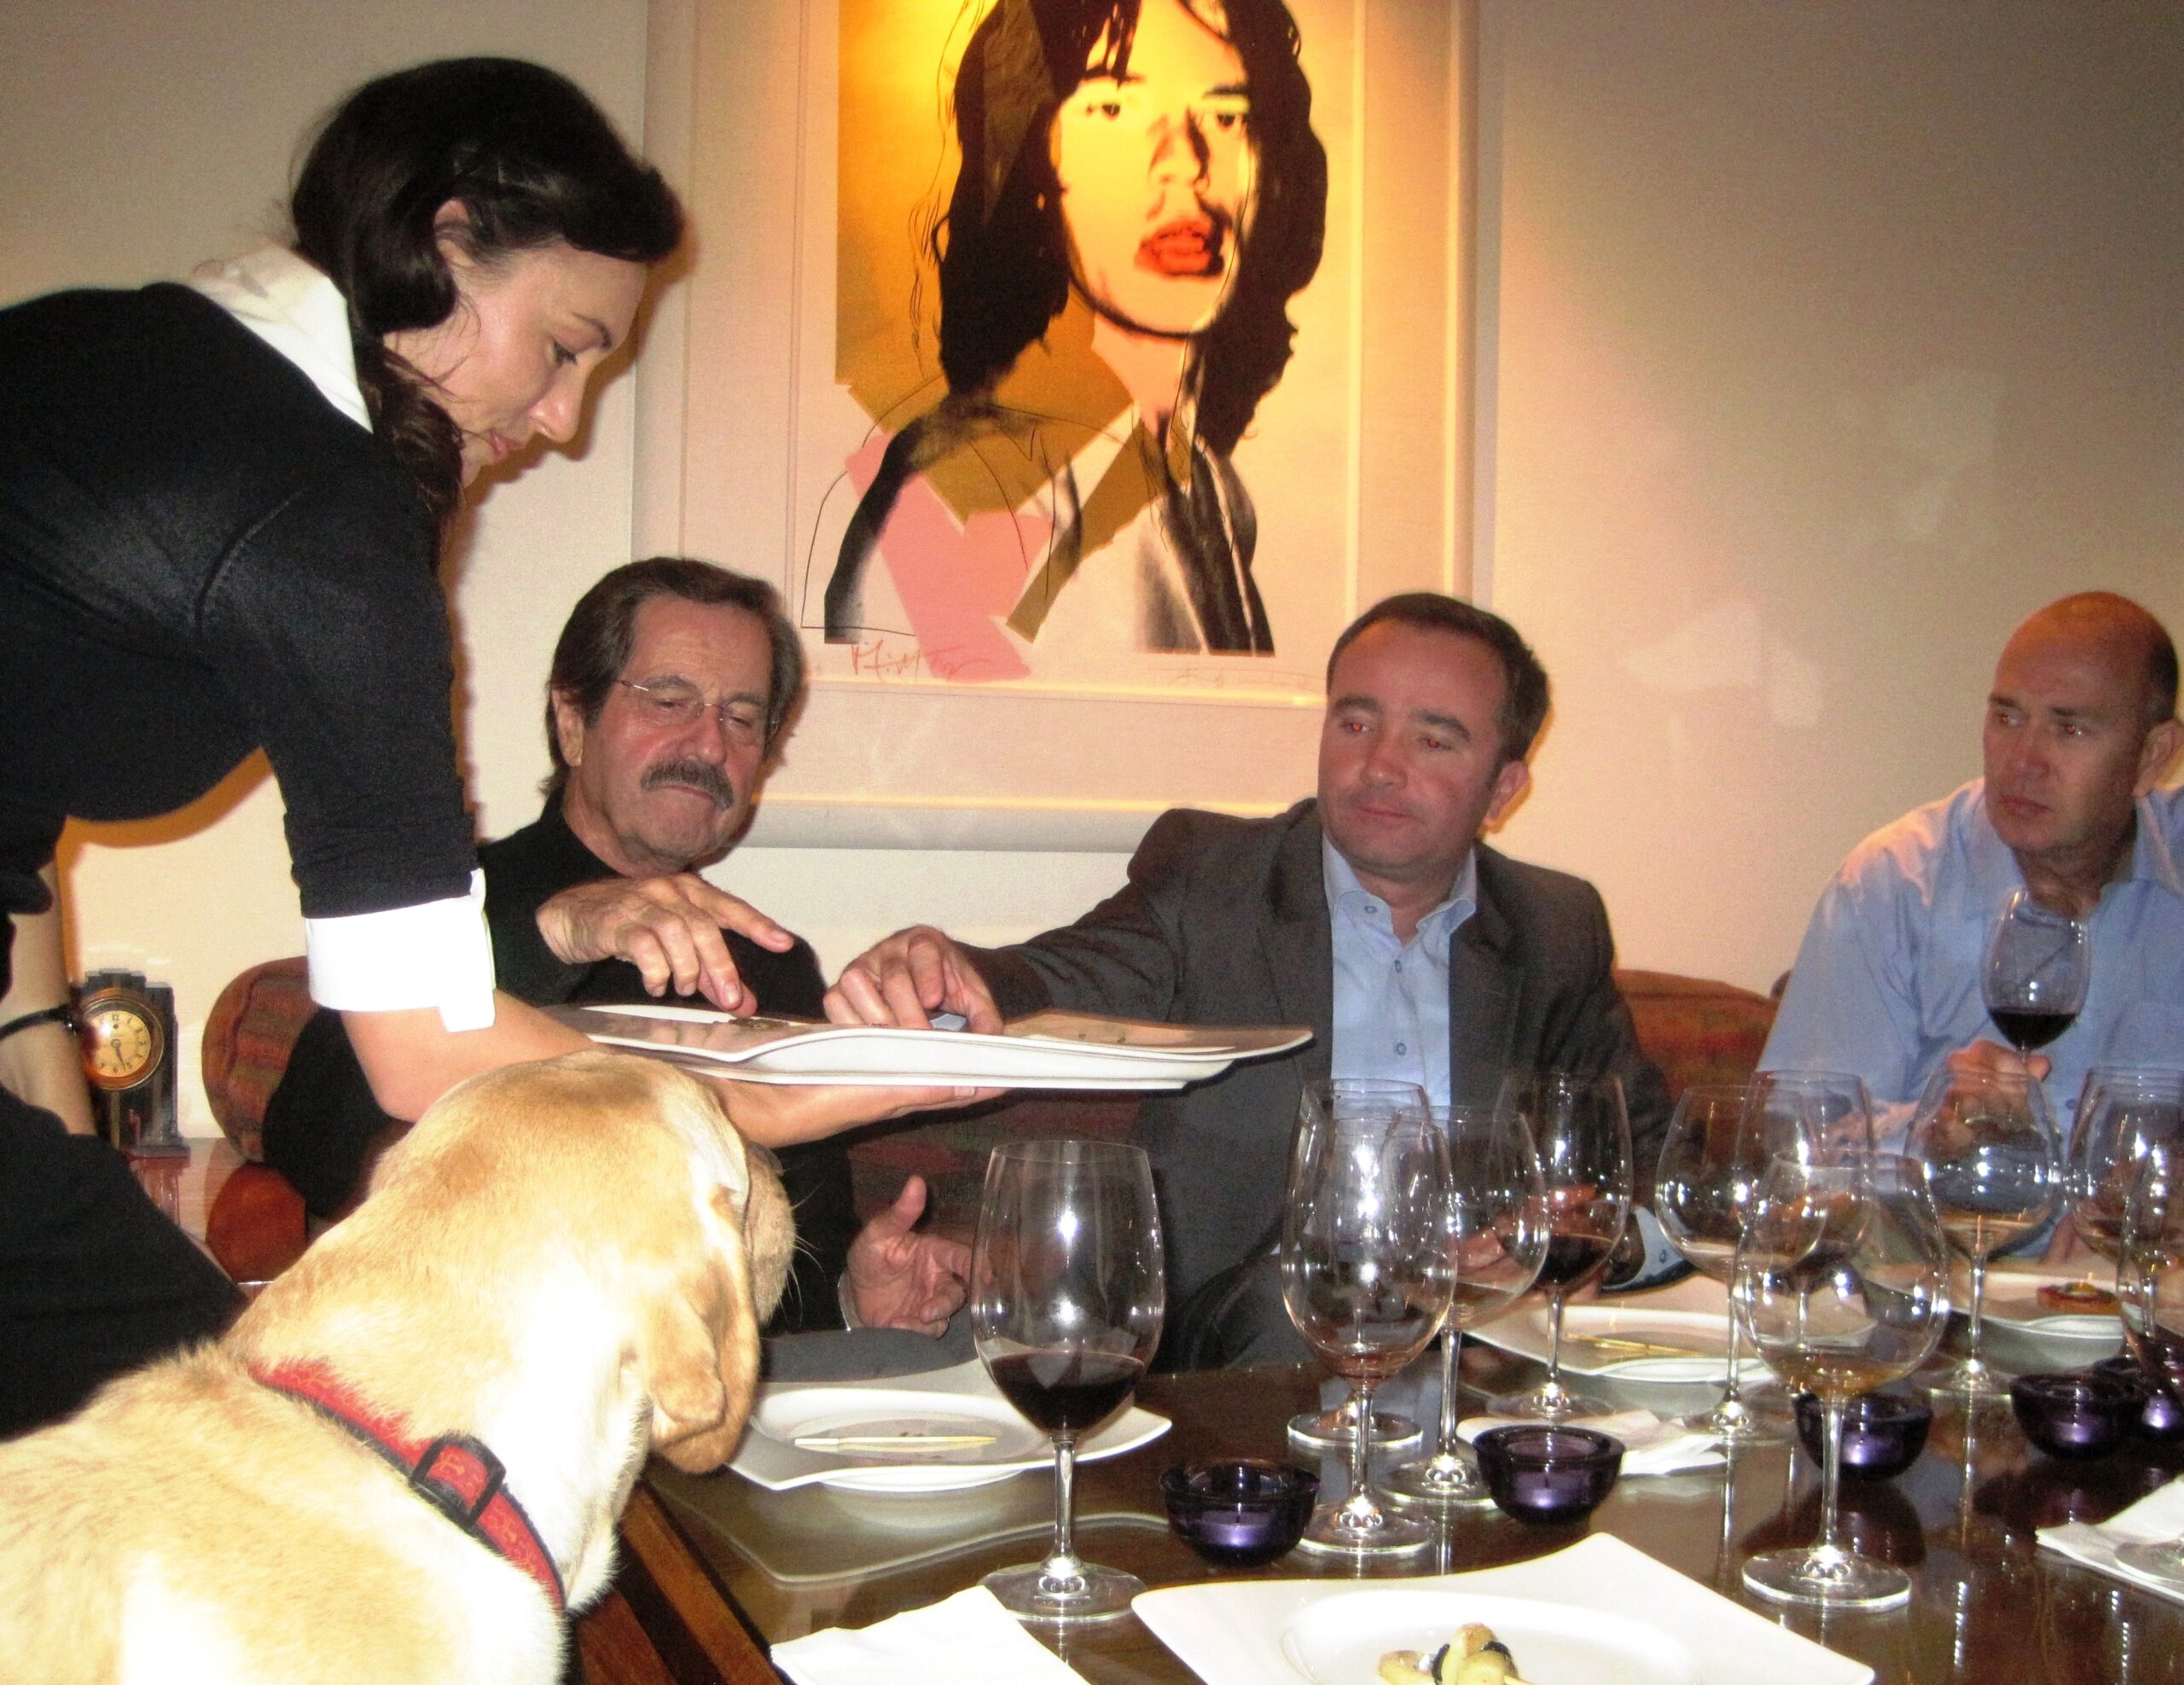 Jean-Philippe Delmas Haut Brion and other wines shared over dinner